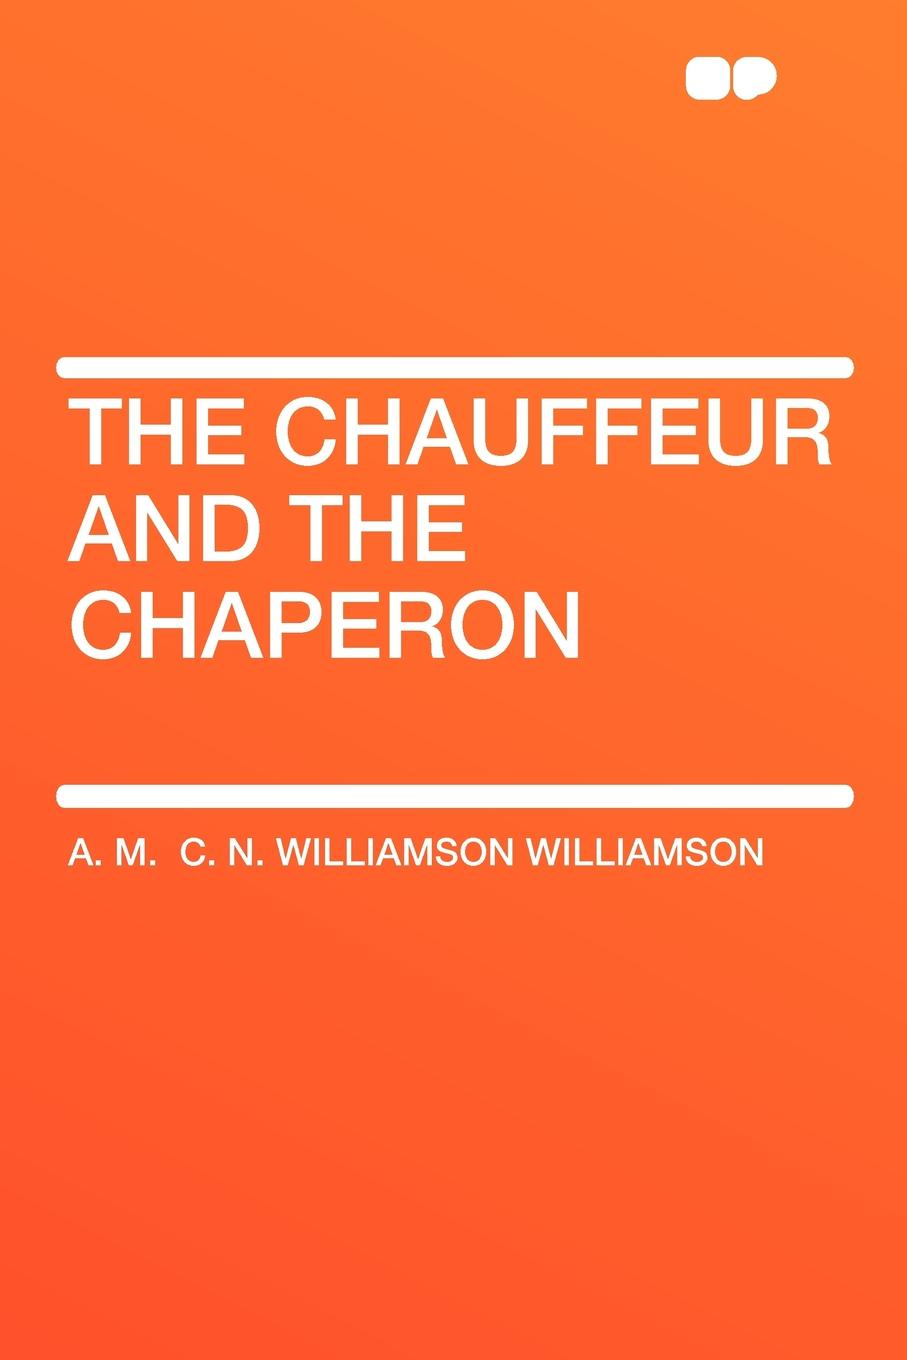 A. M. C. N. Williamson Williamson The Chauffeur and the Chaperon